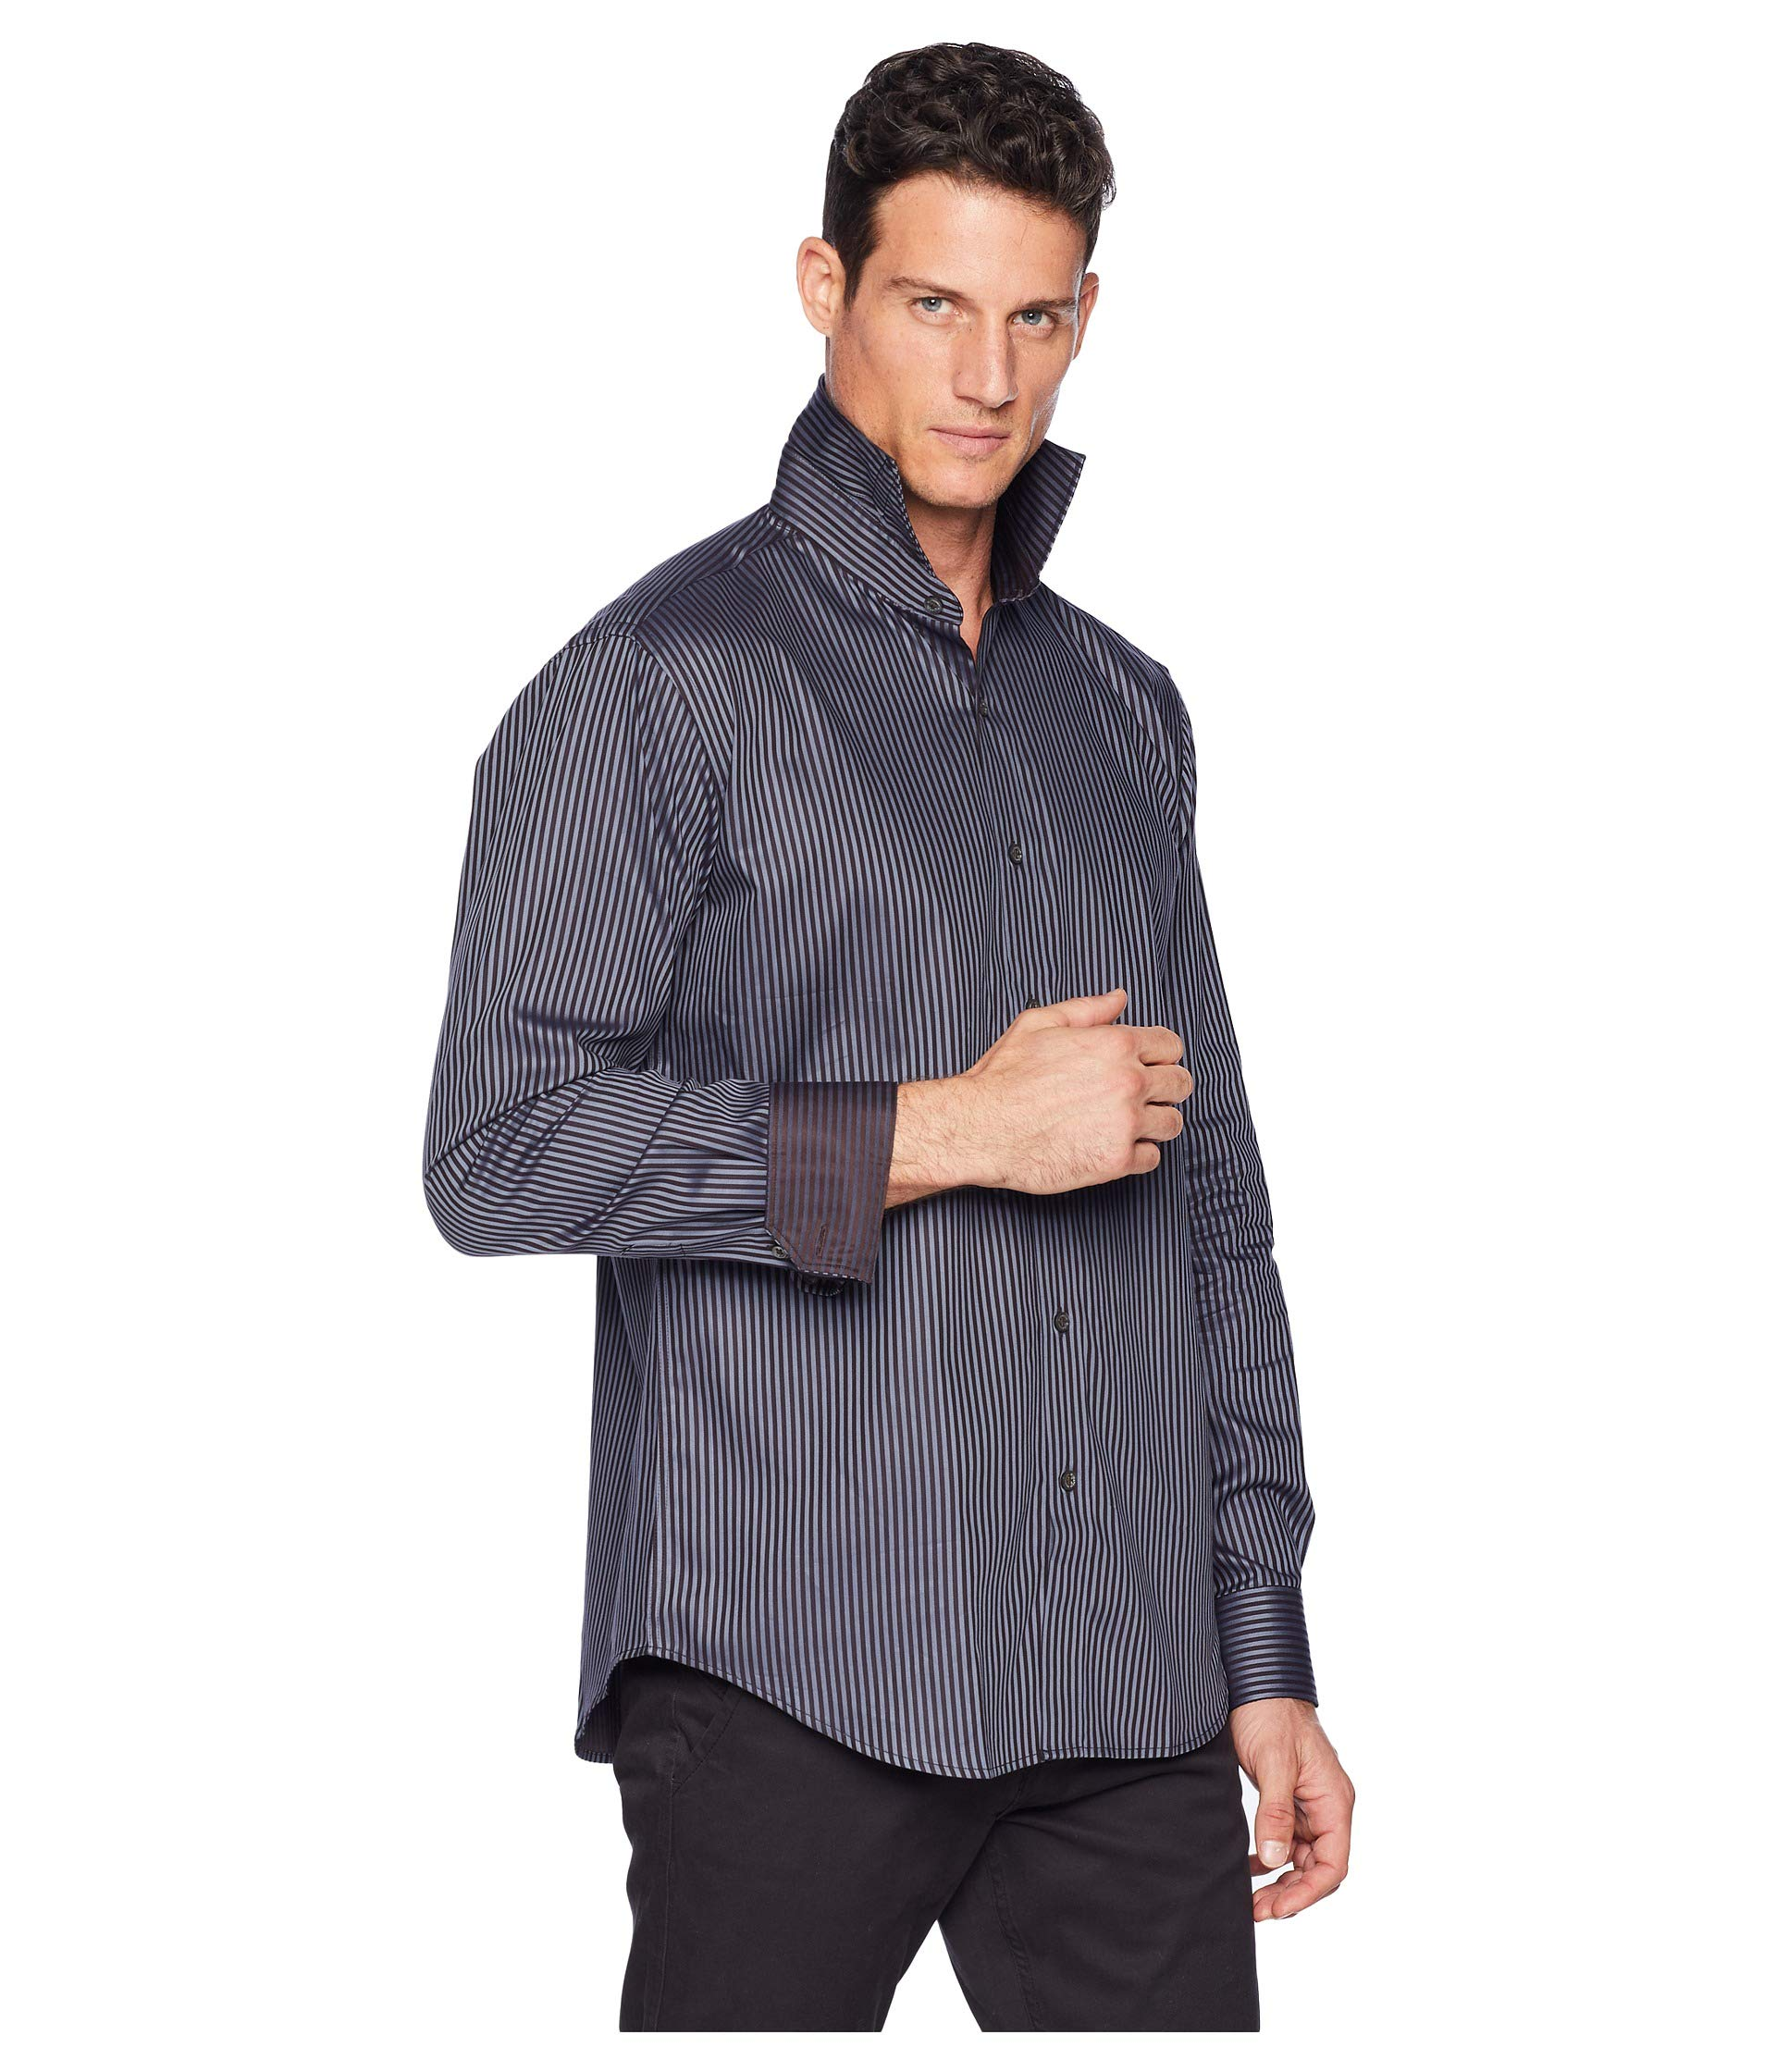 Woven Shaped Charcoal Fit Bugatchi Sleeve Shirt Long ERSSxqI